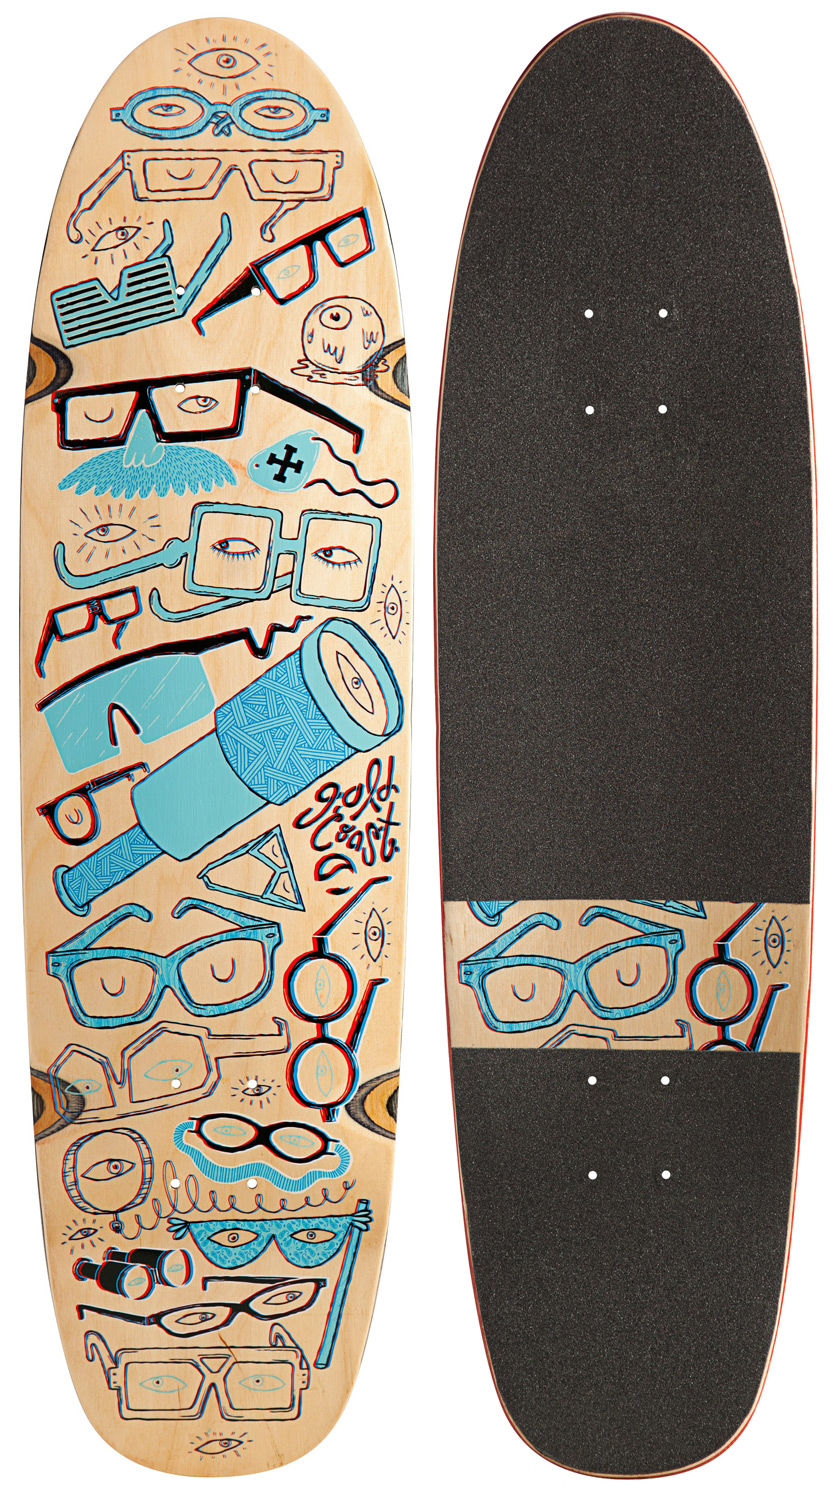 "Longboarding Everyone knows that there are three dimensions, what the 4D presupposes is...what if there was one more  Portland based design collective Jolby made this board to transcend the fourth dimension: Fun. It's a Renegade cruiser shape with all new radii and concave. Avatar has nothing on this thing. Key Features of the GoldCoast 4D Longboard Deck:  31.5"" Long X 8.25"" Wide, 13.75"" Wheelbase  7Ply Canadian Maple  Die Cut Grip Tape  Custom Goldcoast X Jolby 3D Glasses - $32.95"